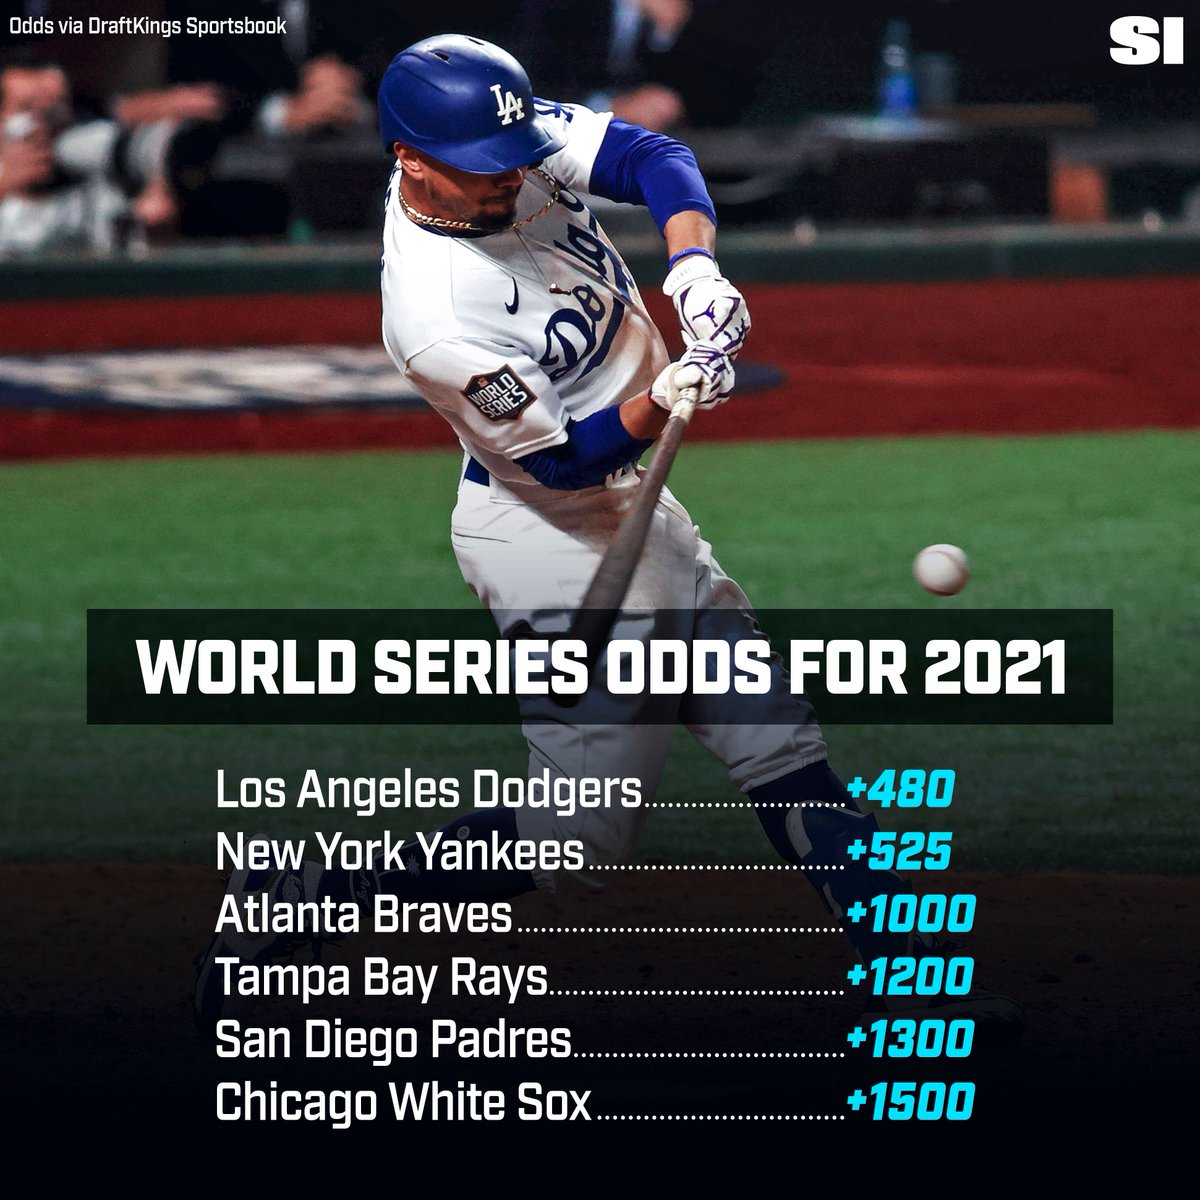 Here are your 2021 #WorldSeries favorites, via @DKSportsbook.  We've got the details, as well as the longshots and more.  https://t.co/7cGuc0llme https://t.co/zYI7tfNvym